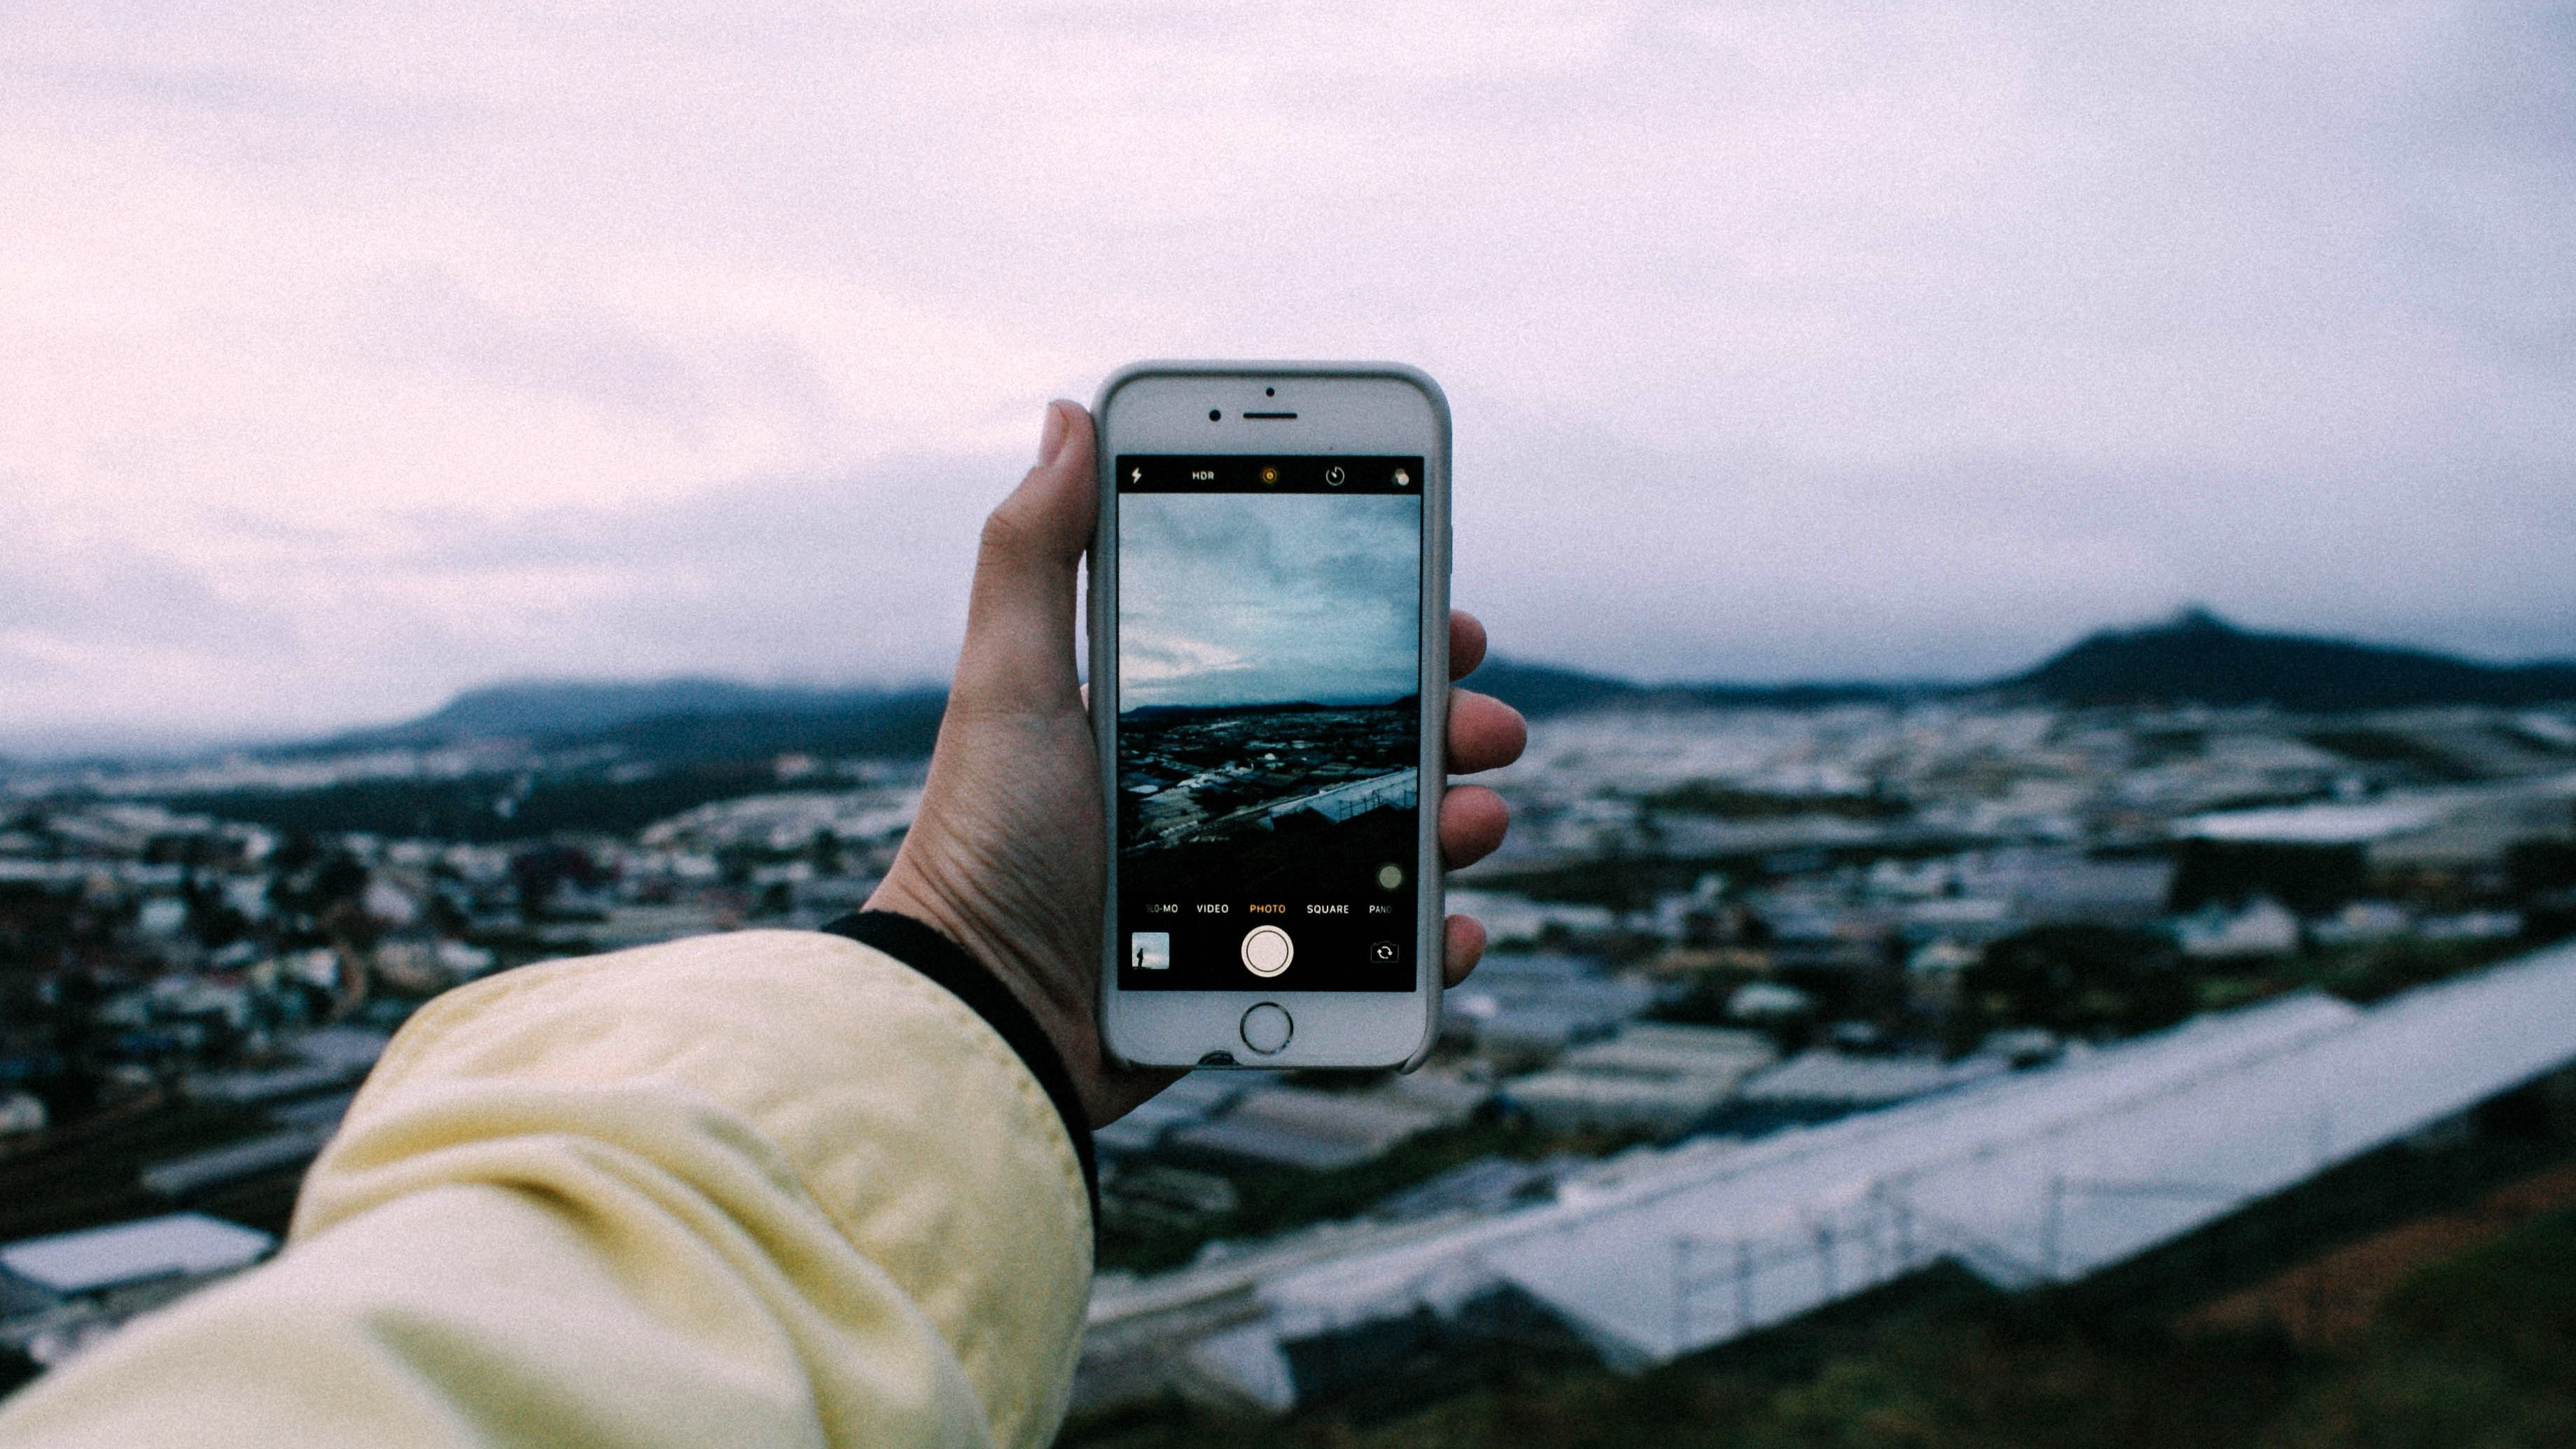 A person holds up a smartphone to take a picture of an urban landscape on an overcast day.